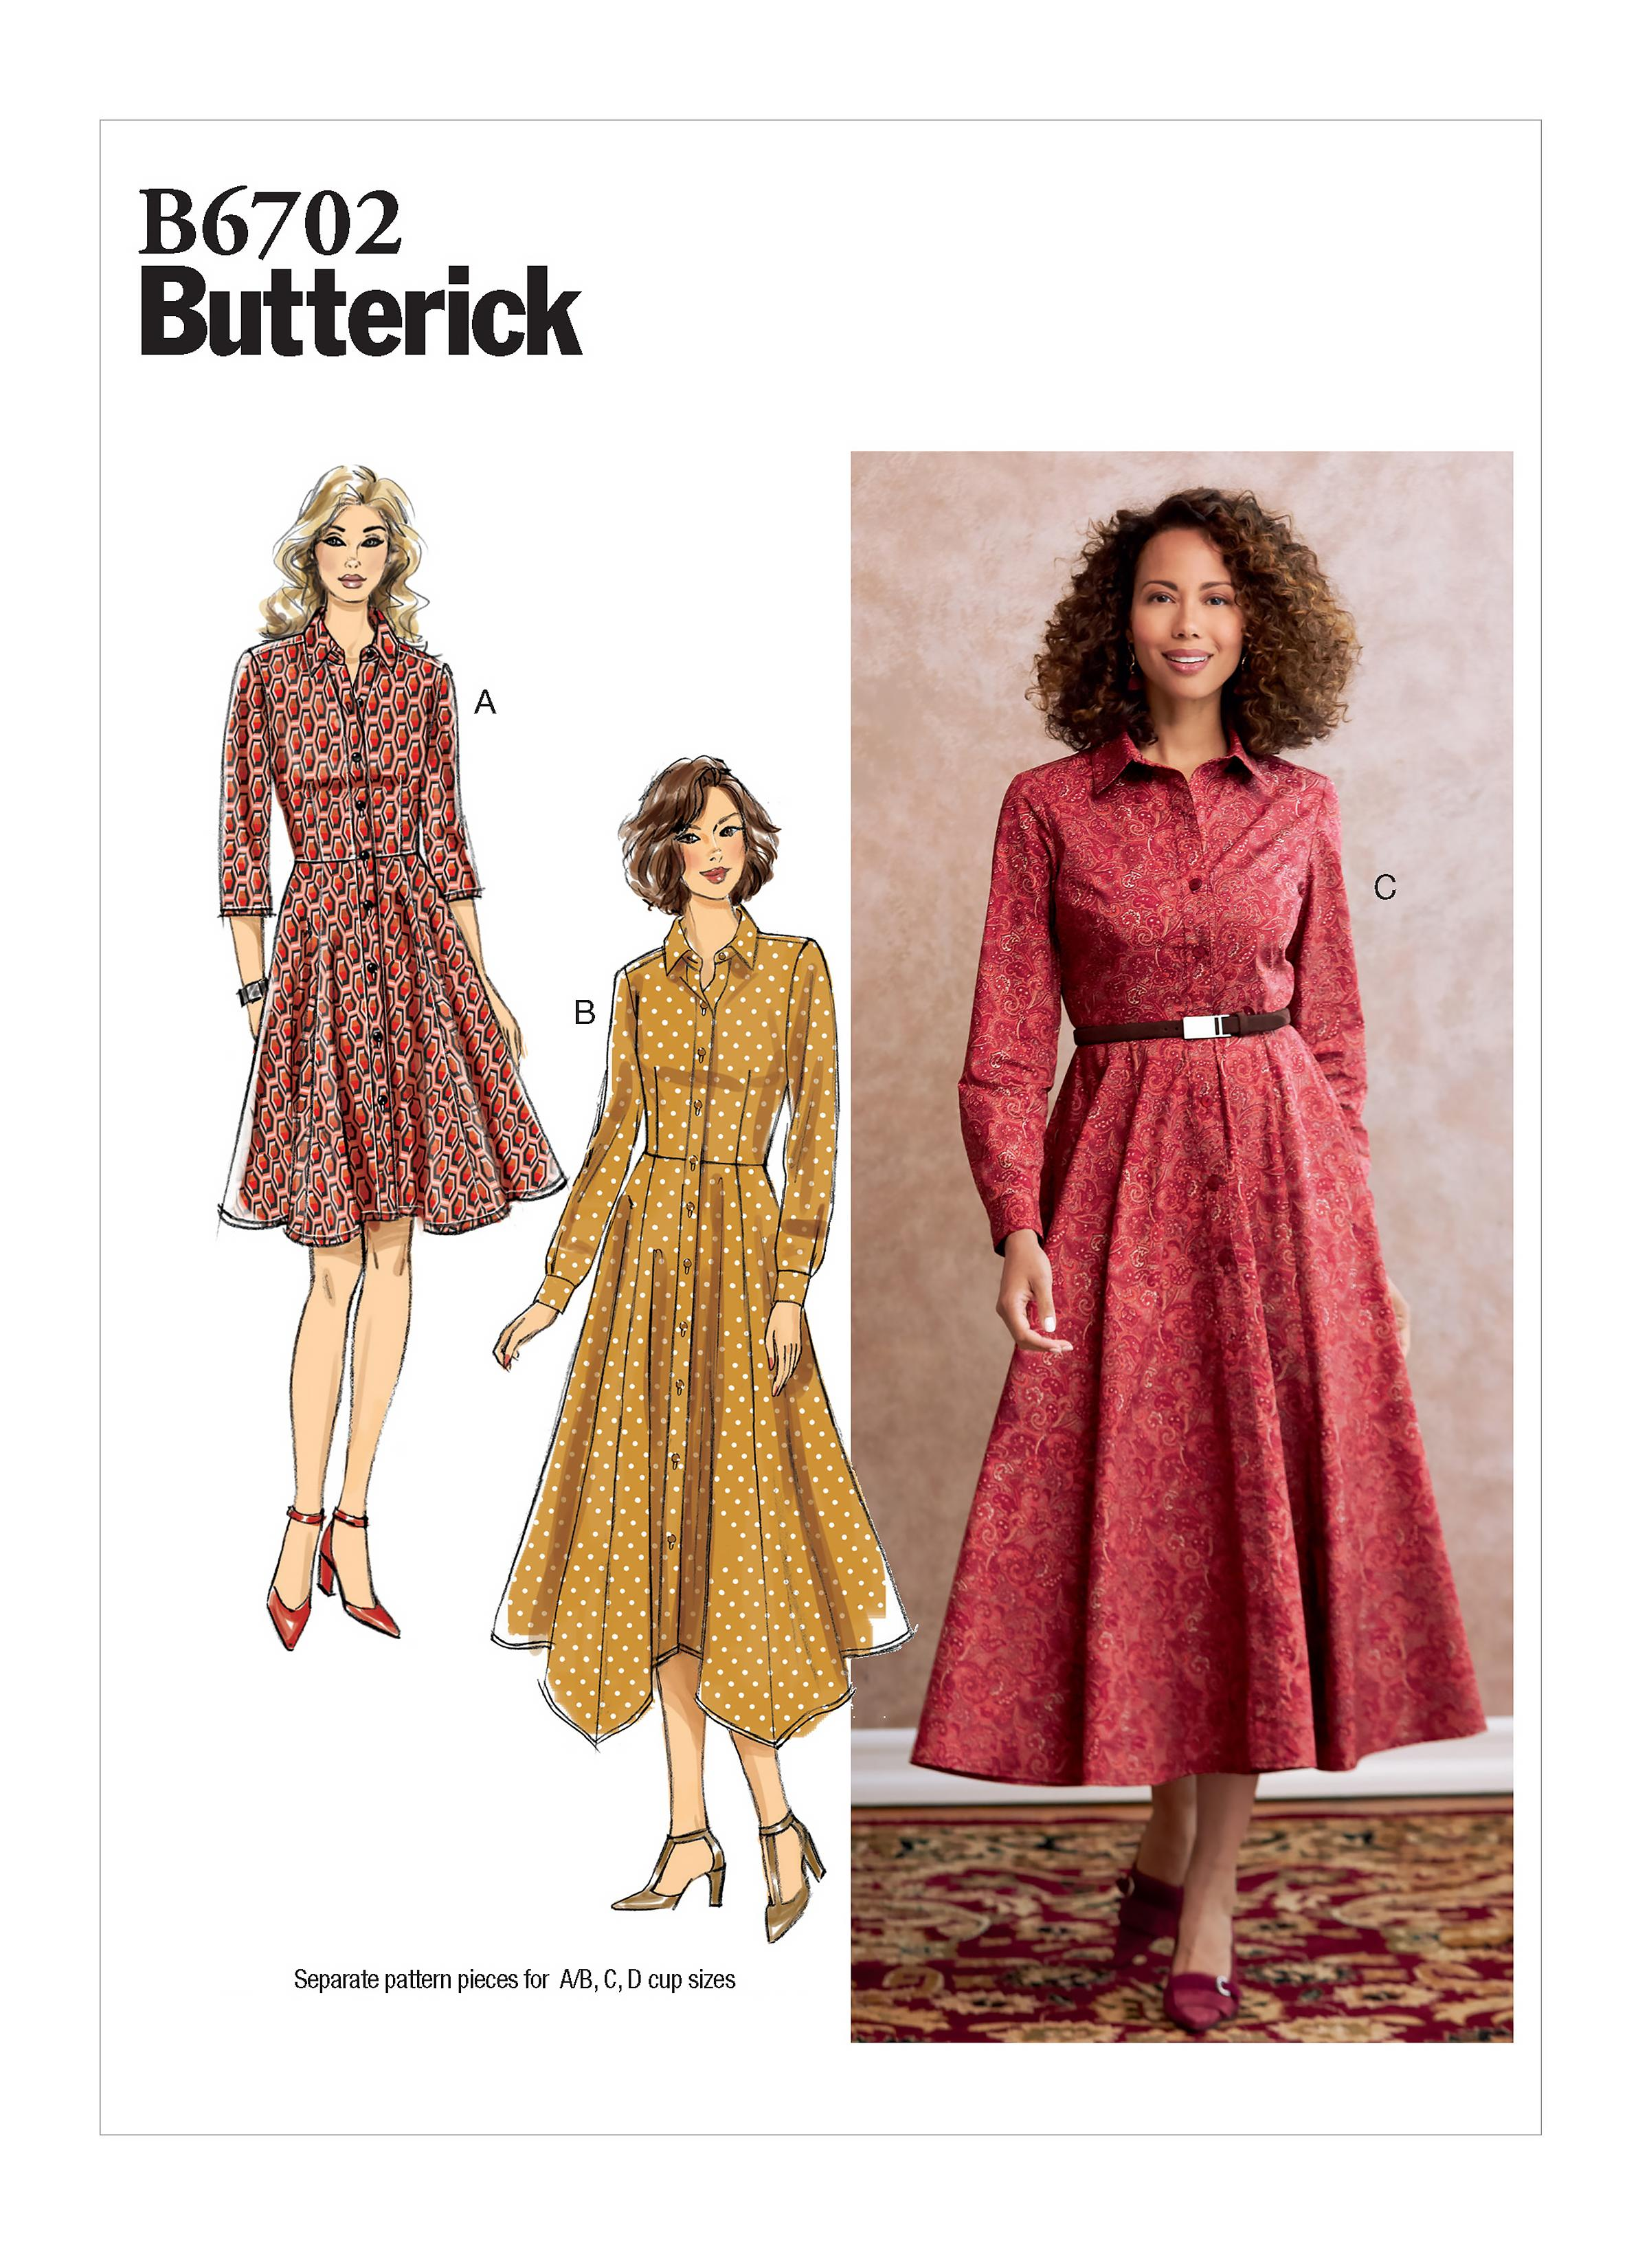 Butterick B6702 Misses' Dress